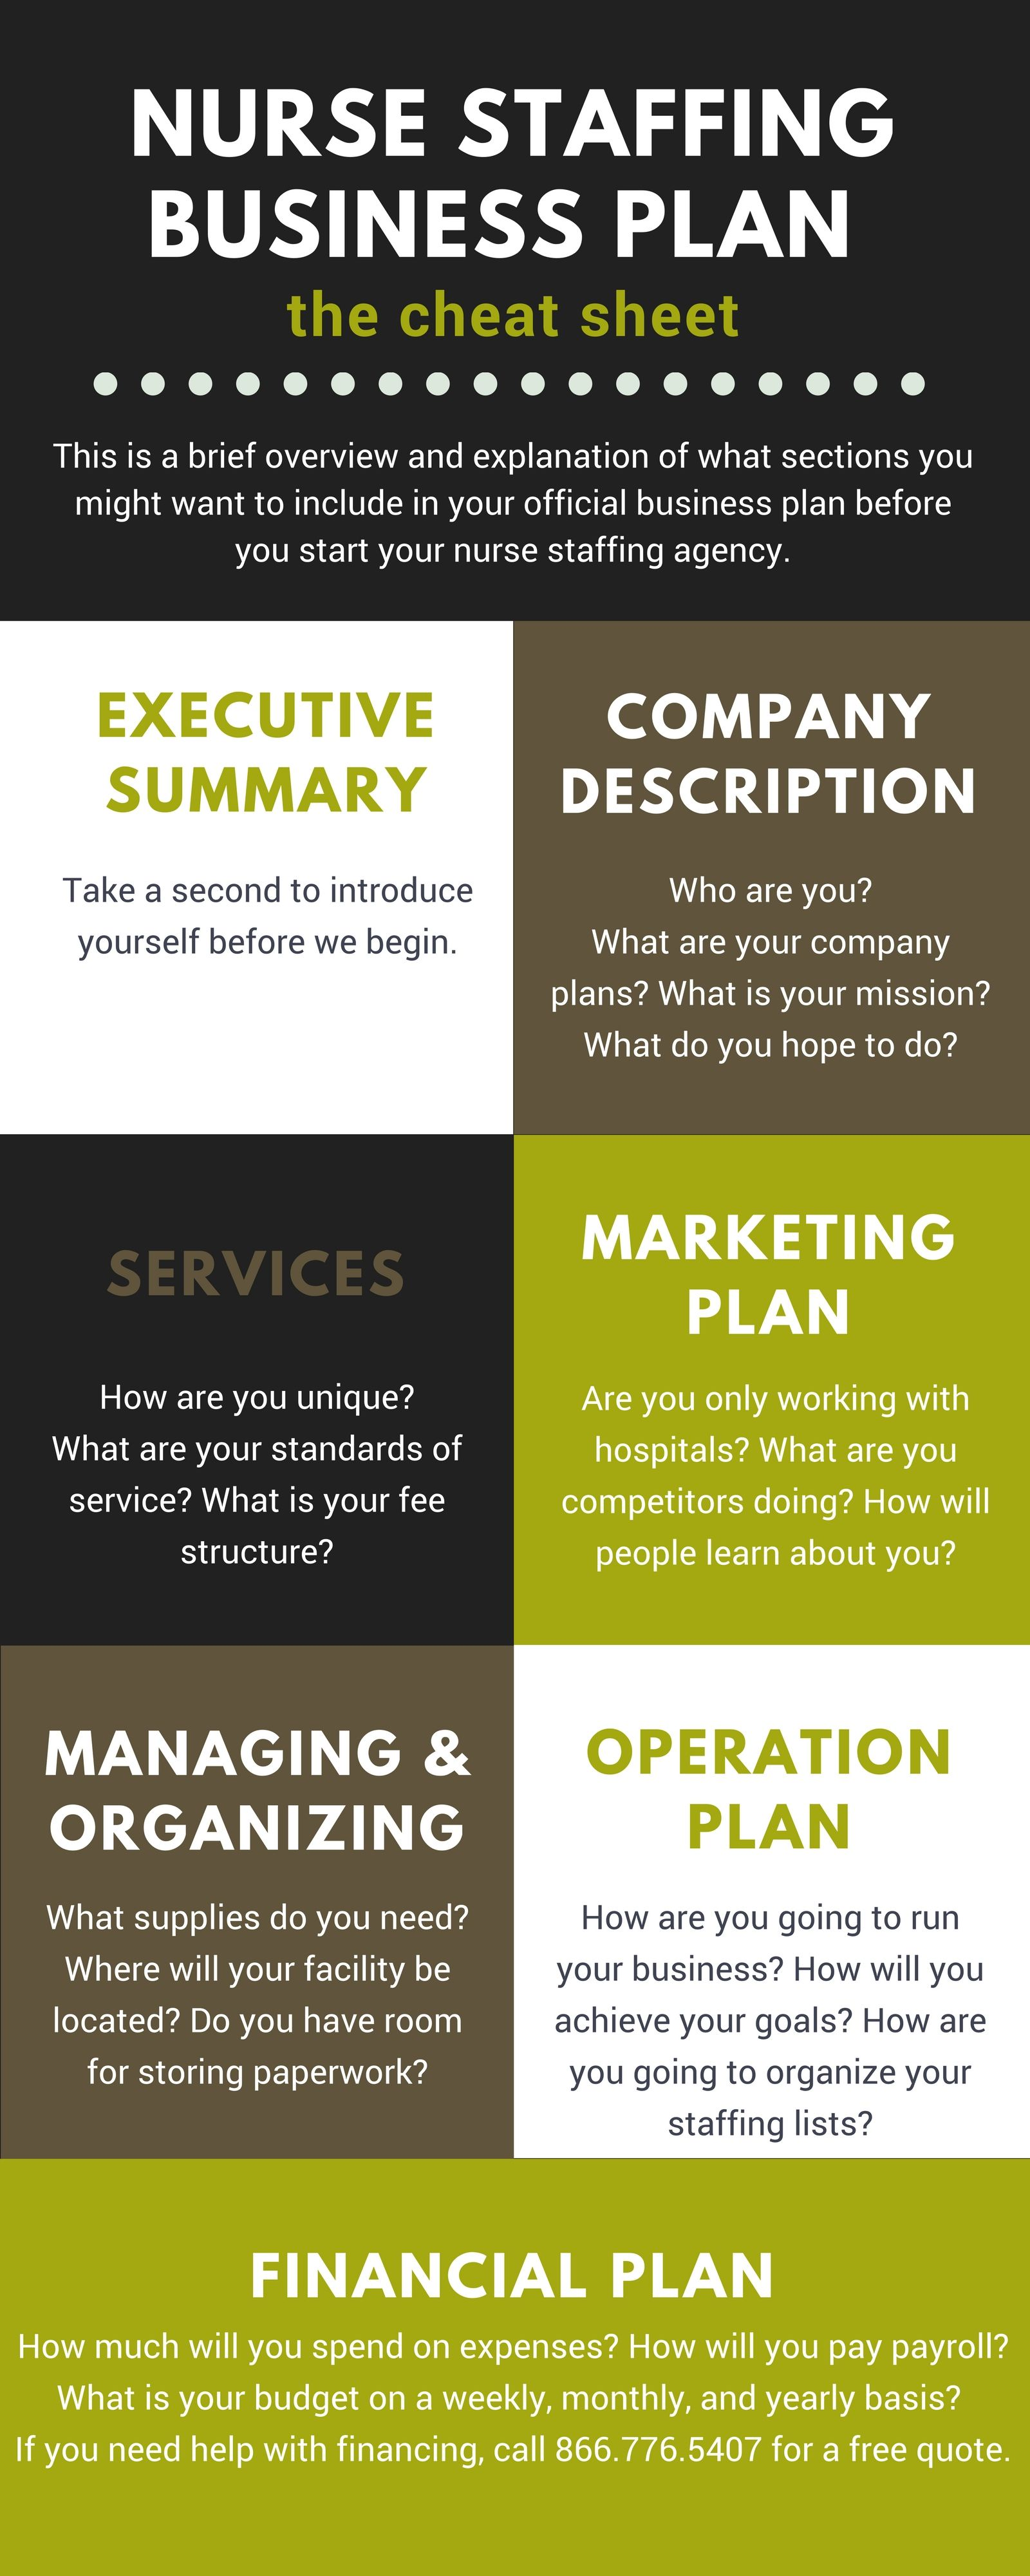 When You Re Ready This Plan Can Be As Extensive Or Brief As You Feel Necessary It S Your Business He Staffing Agency Staffing Agency Business Nurse Staffing